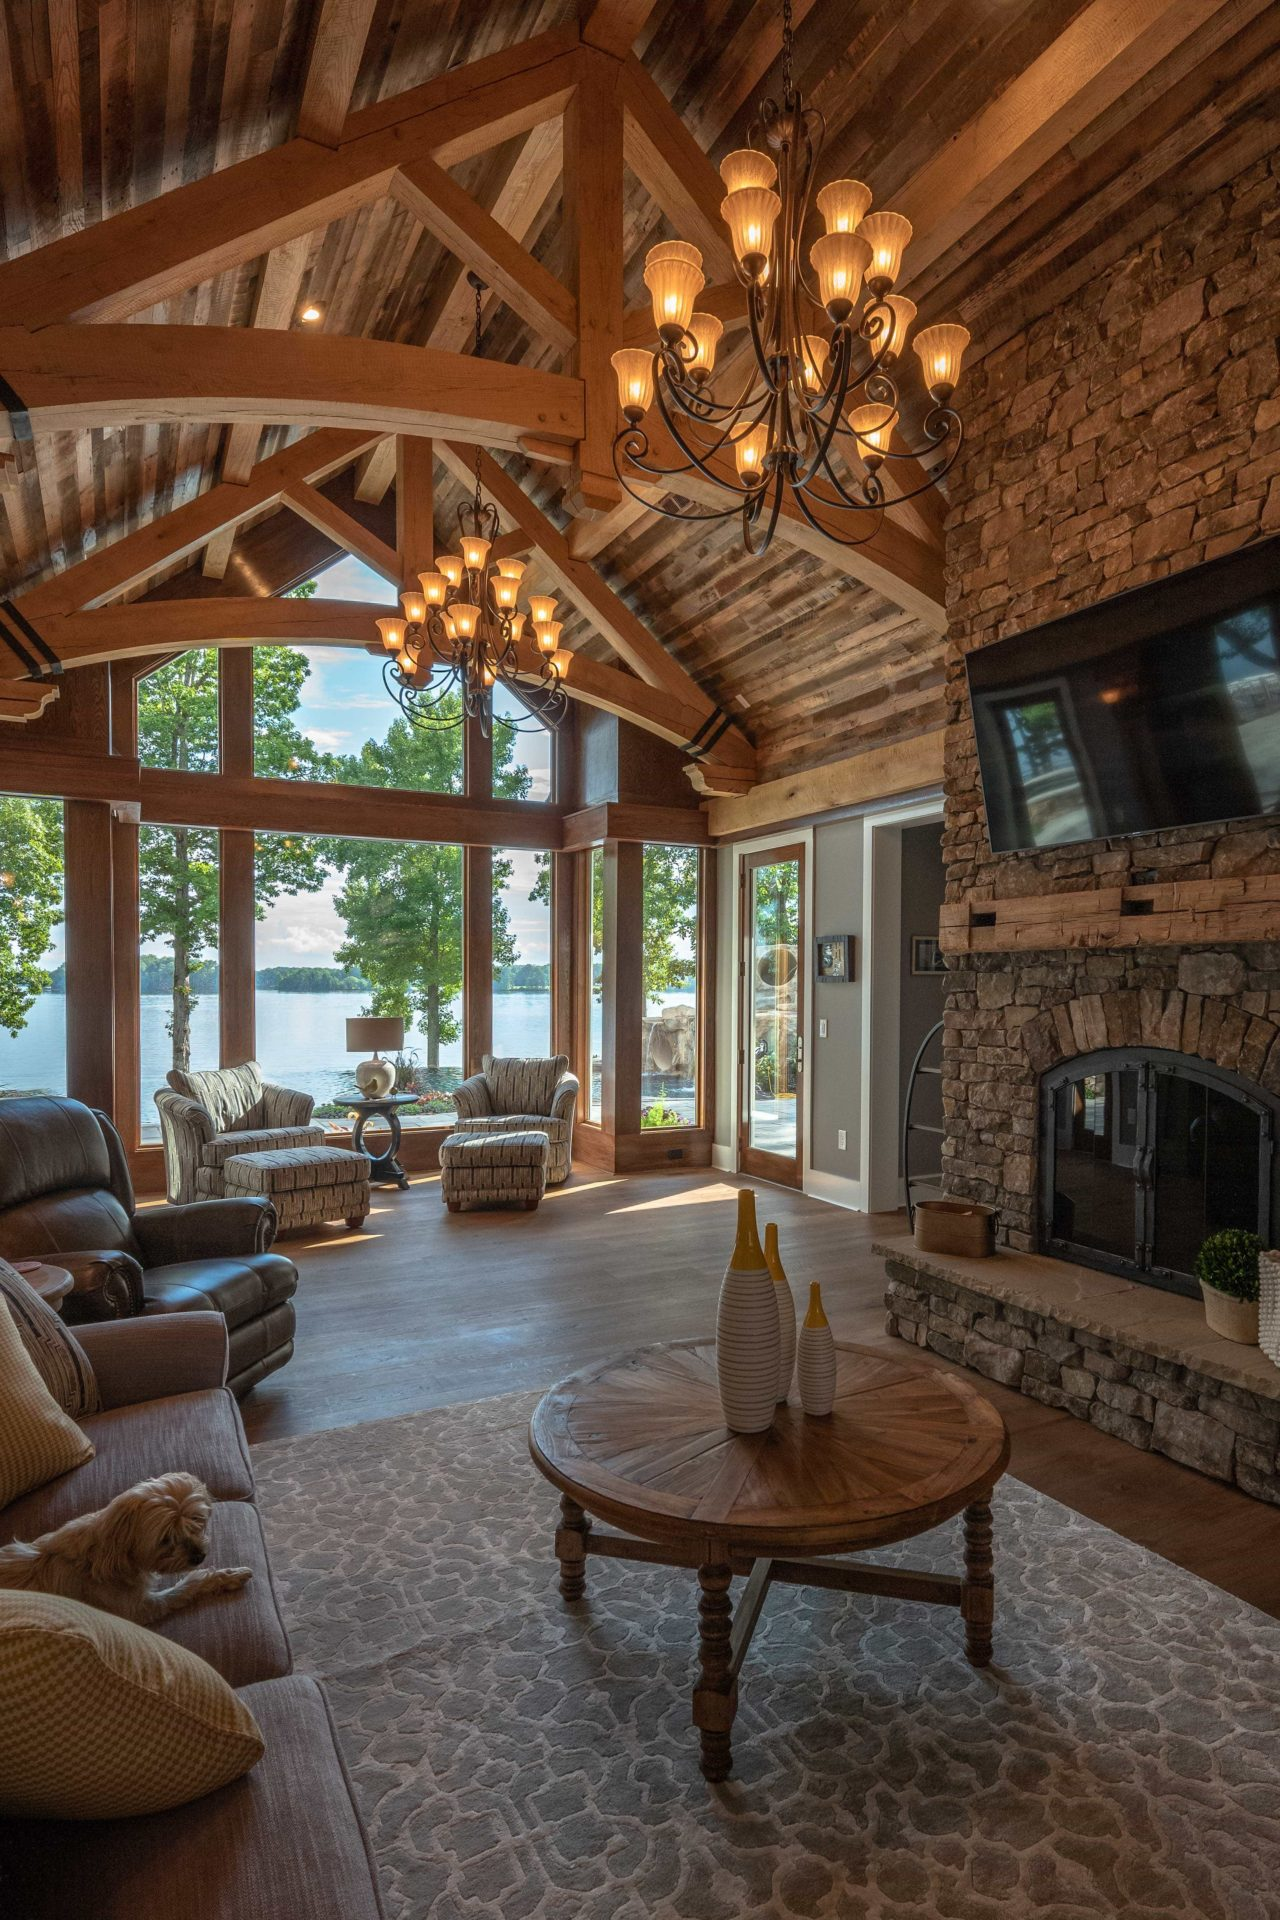 interior great rooms amazing home interiortimber frame great rooms, lodge rooms, and living roomstimber frame great rooms